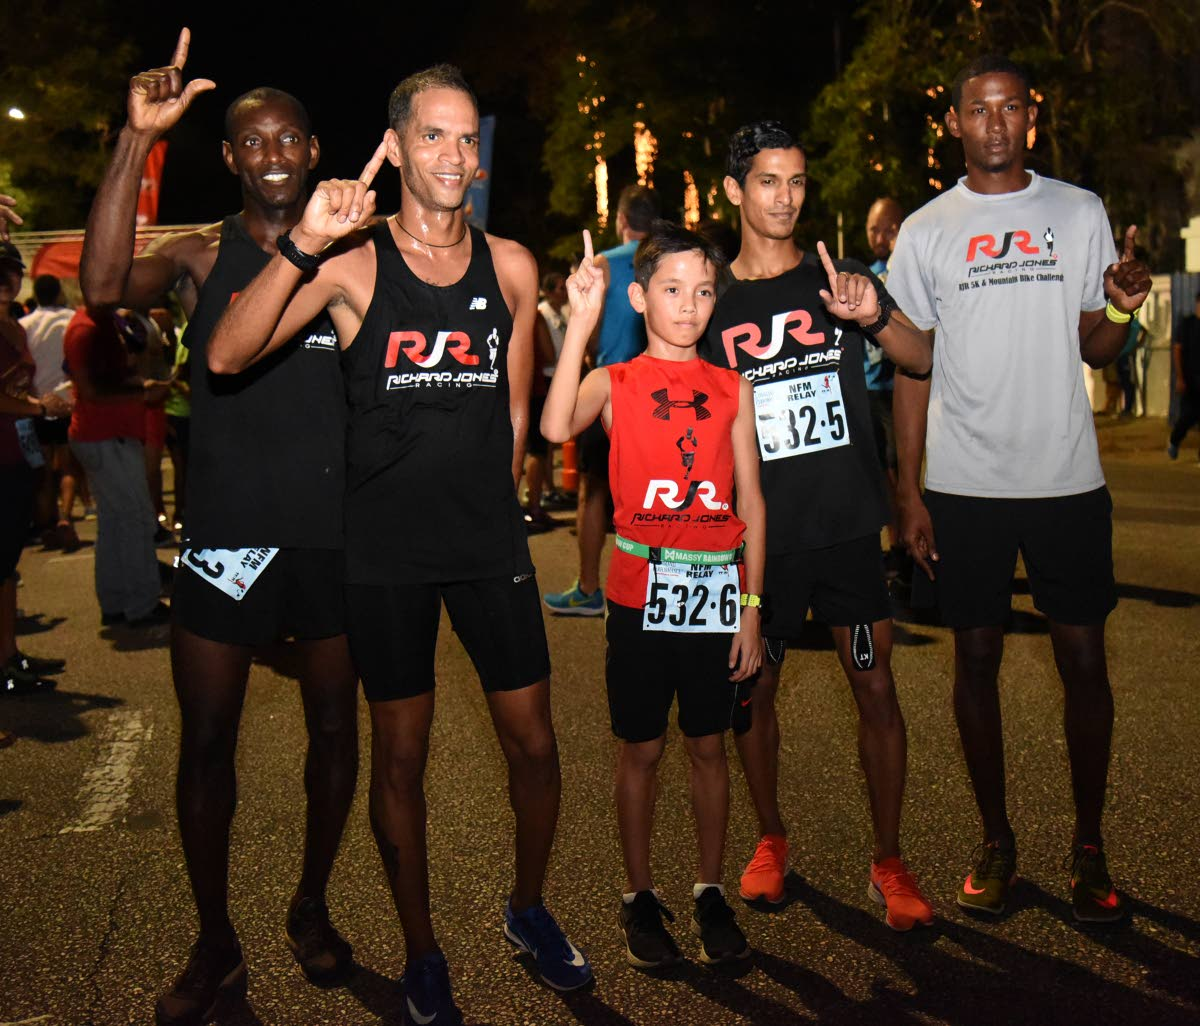 Richard Jones (second from left) and Triston Scott (centre) pose with members of the Richard Jones Racing group after their victory at yesterday's TT International Marathon Relay at the Queen's Park Savannah, Port of Spain.